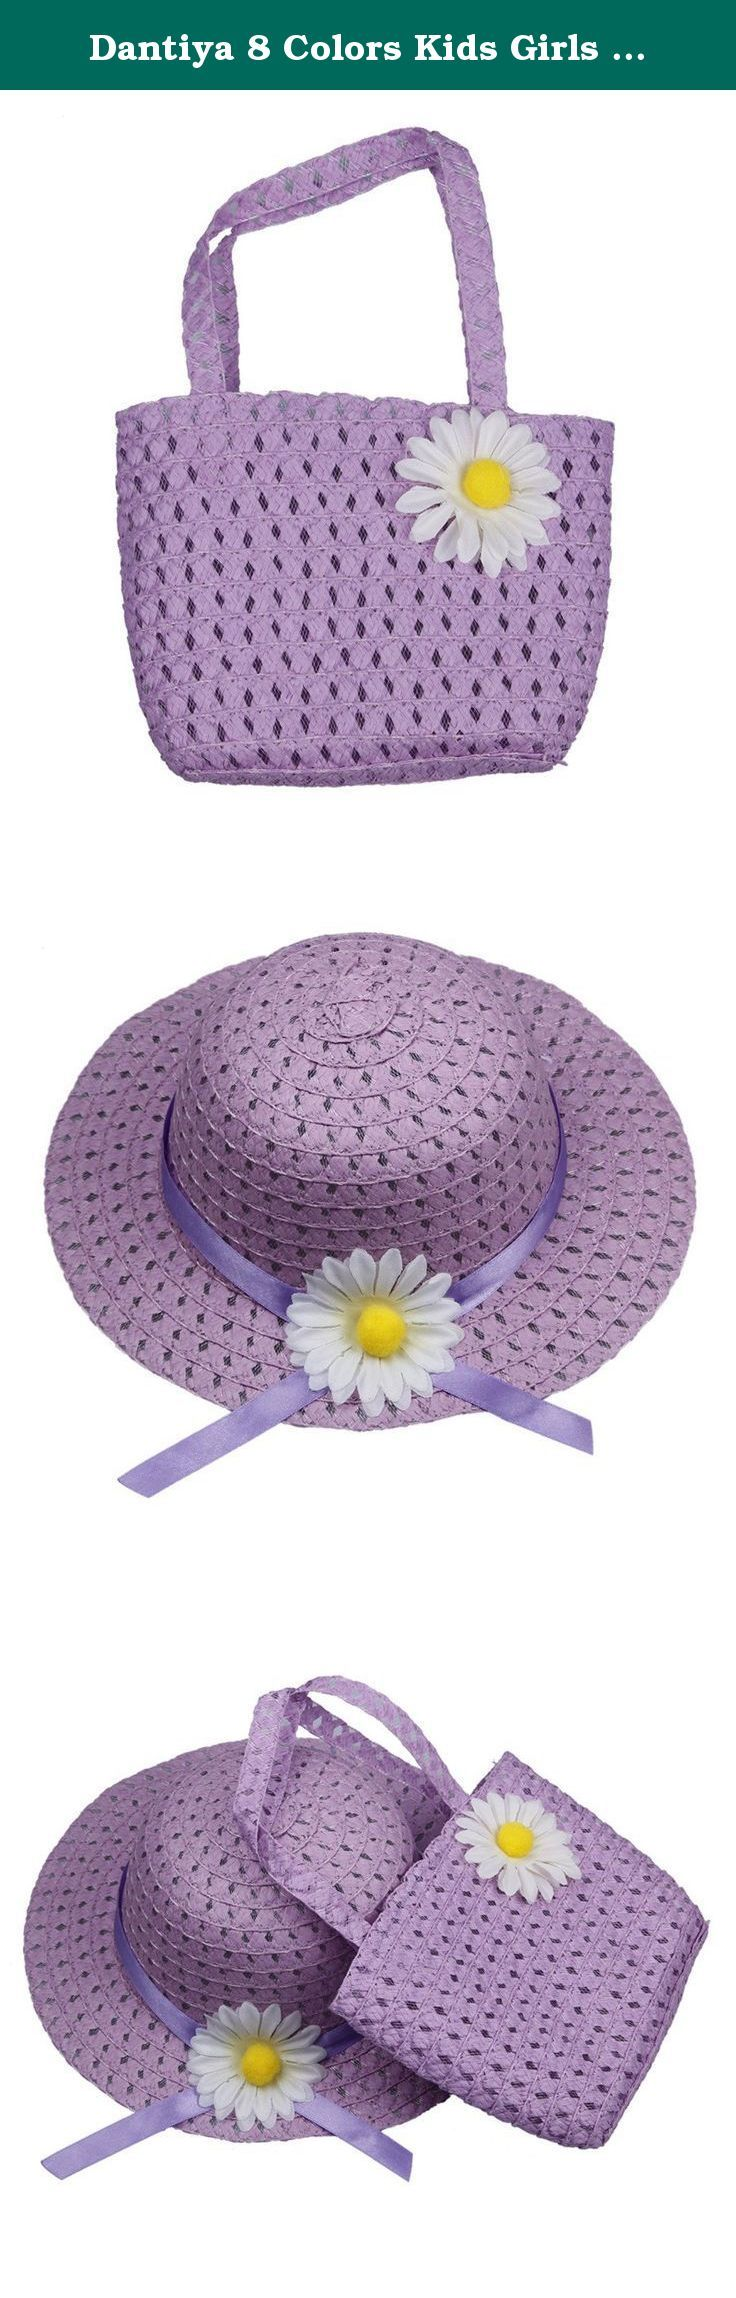 Dantiya 8 Colors Kids Girls Straw Sun Hat Cap Sunflower Handbag Purse Sets (Purple). Package includes: 1 x girl hat 1 x girl purse Please allow a little color aberration.